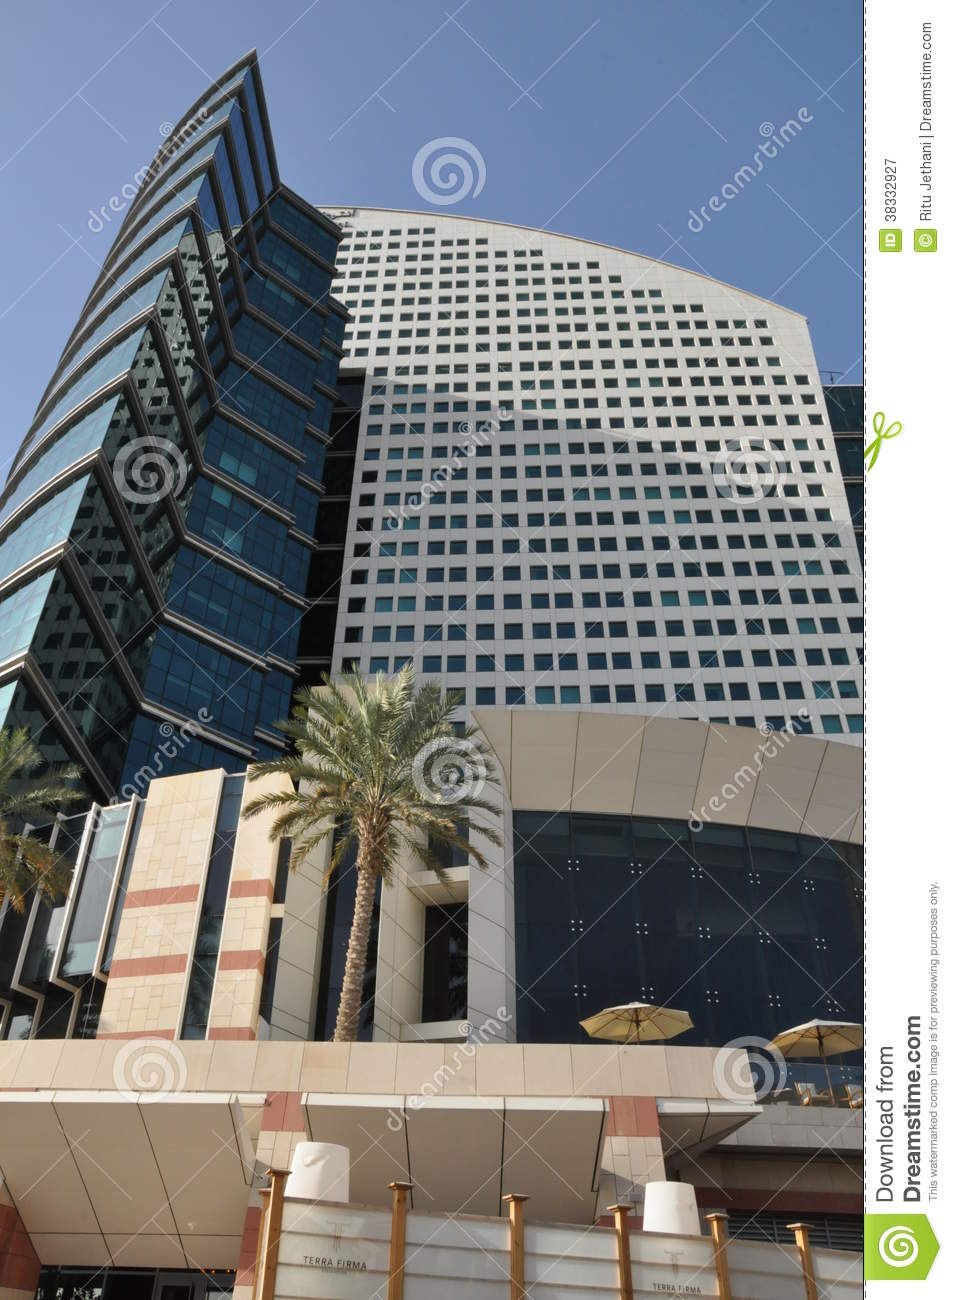 Hotel intercontinental en Dubai, UAE